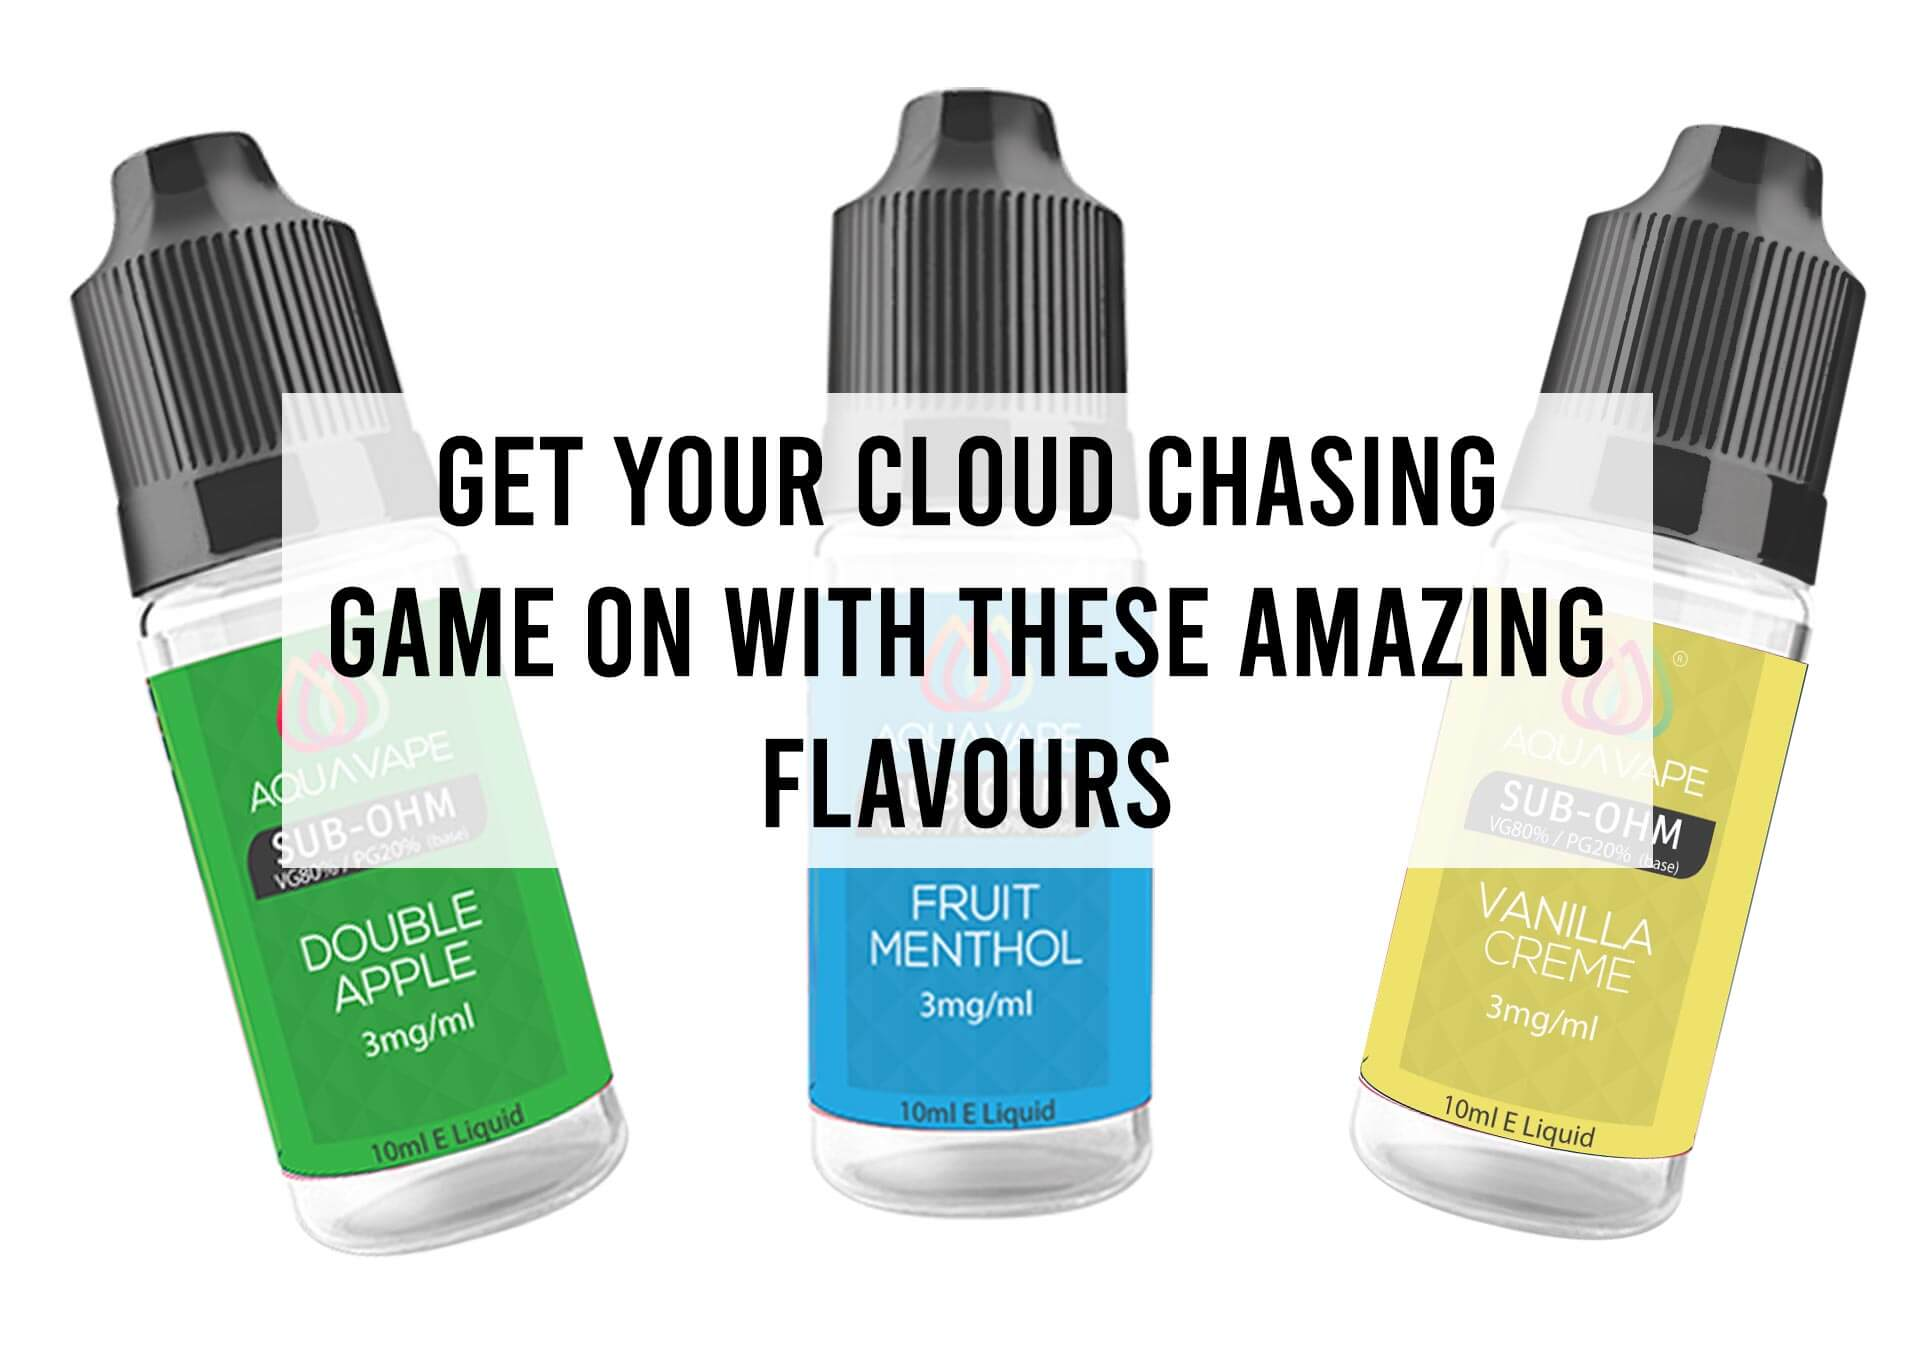 Get-your-Cloud-Chasing-Game-on-with-these-Amazing-Flavours